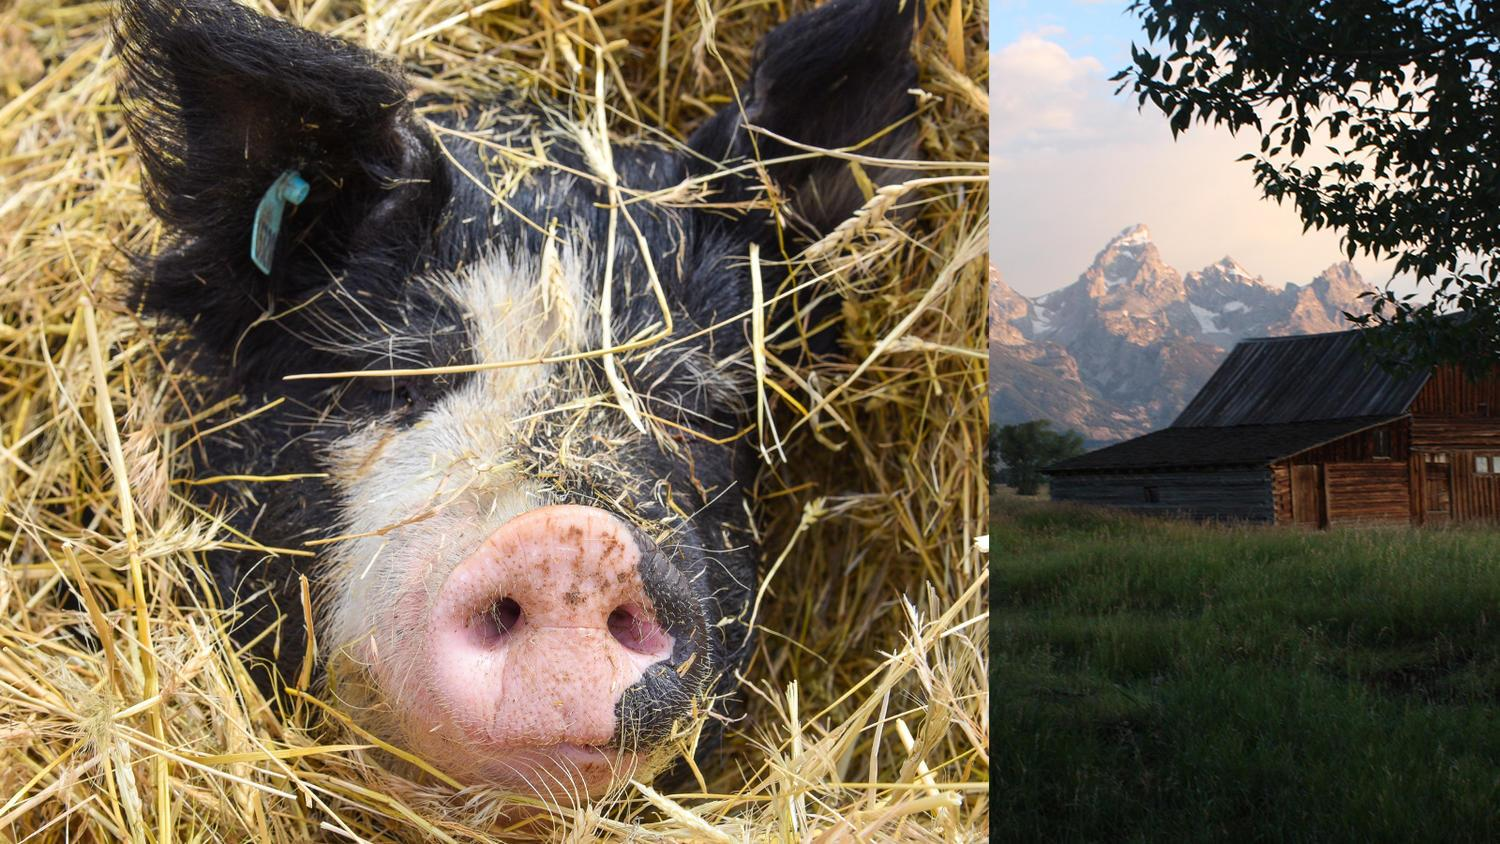 Picture of a Tender Belly pig and a farm with mountains behind it